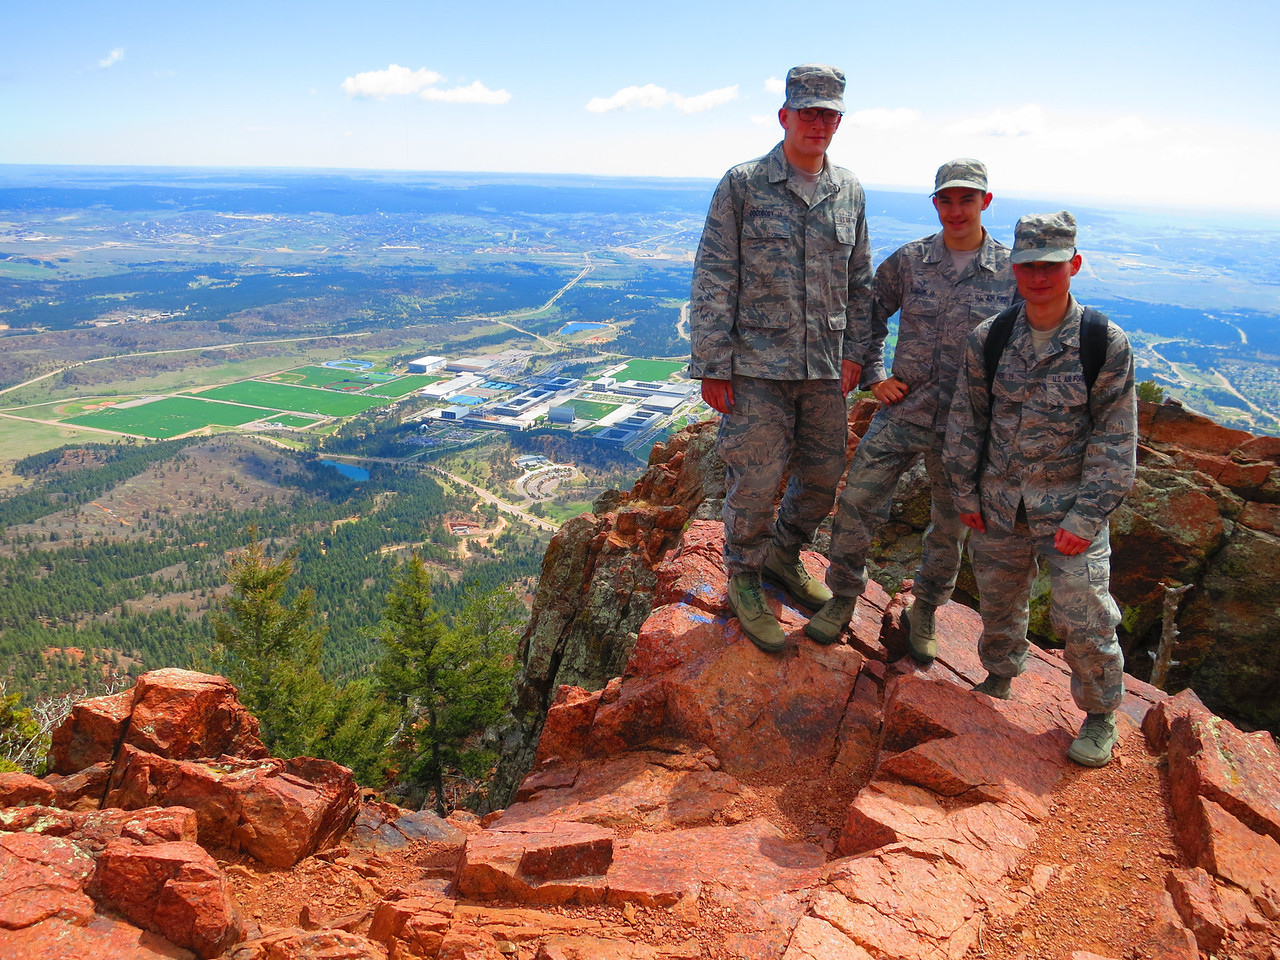 Only three more years to go. ... Thanks, guys, for your service to our nation.